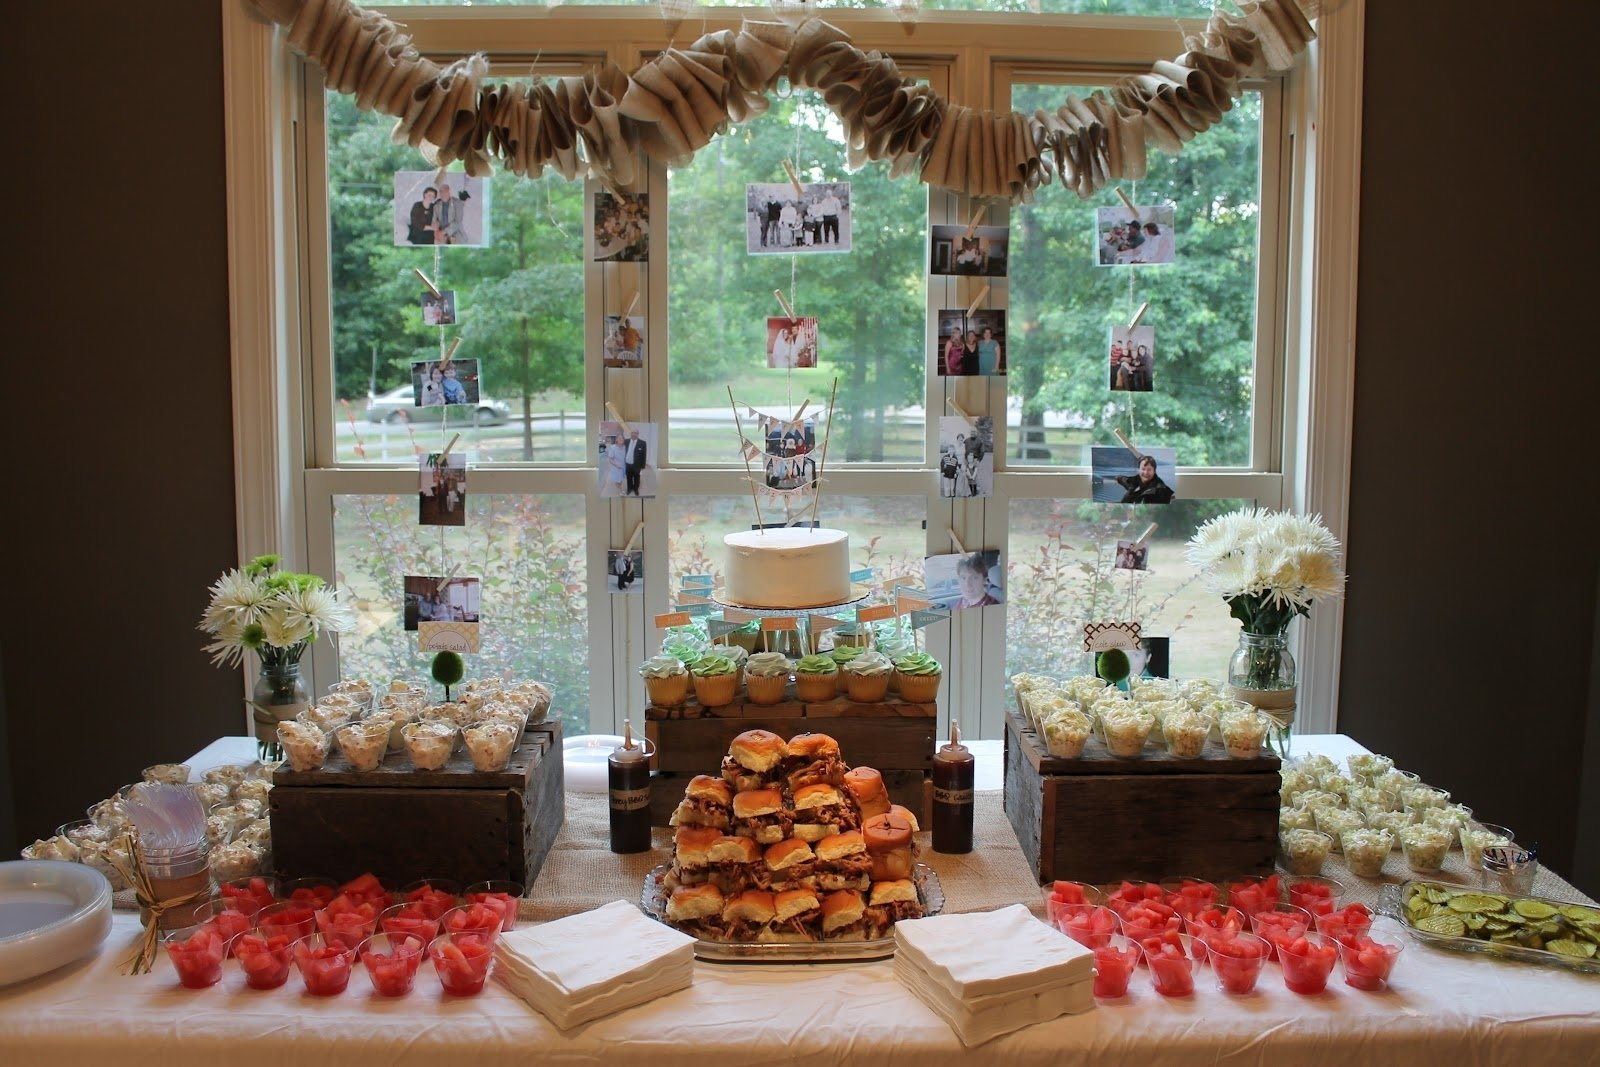 10 Great Birthday Party Ideas For Wife surprise party ideas for 60th birthday in perfect diamond surprise 2020